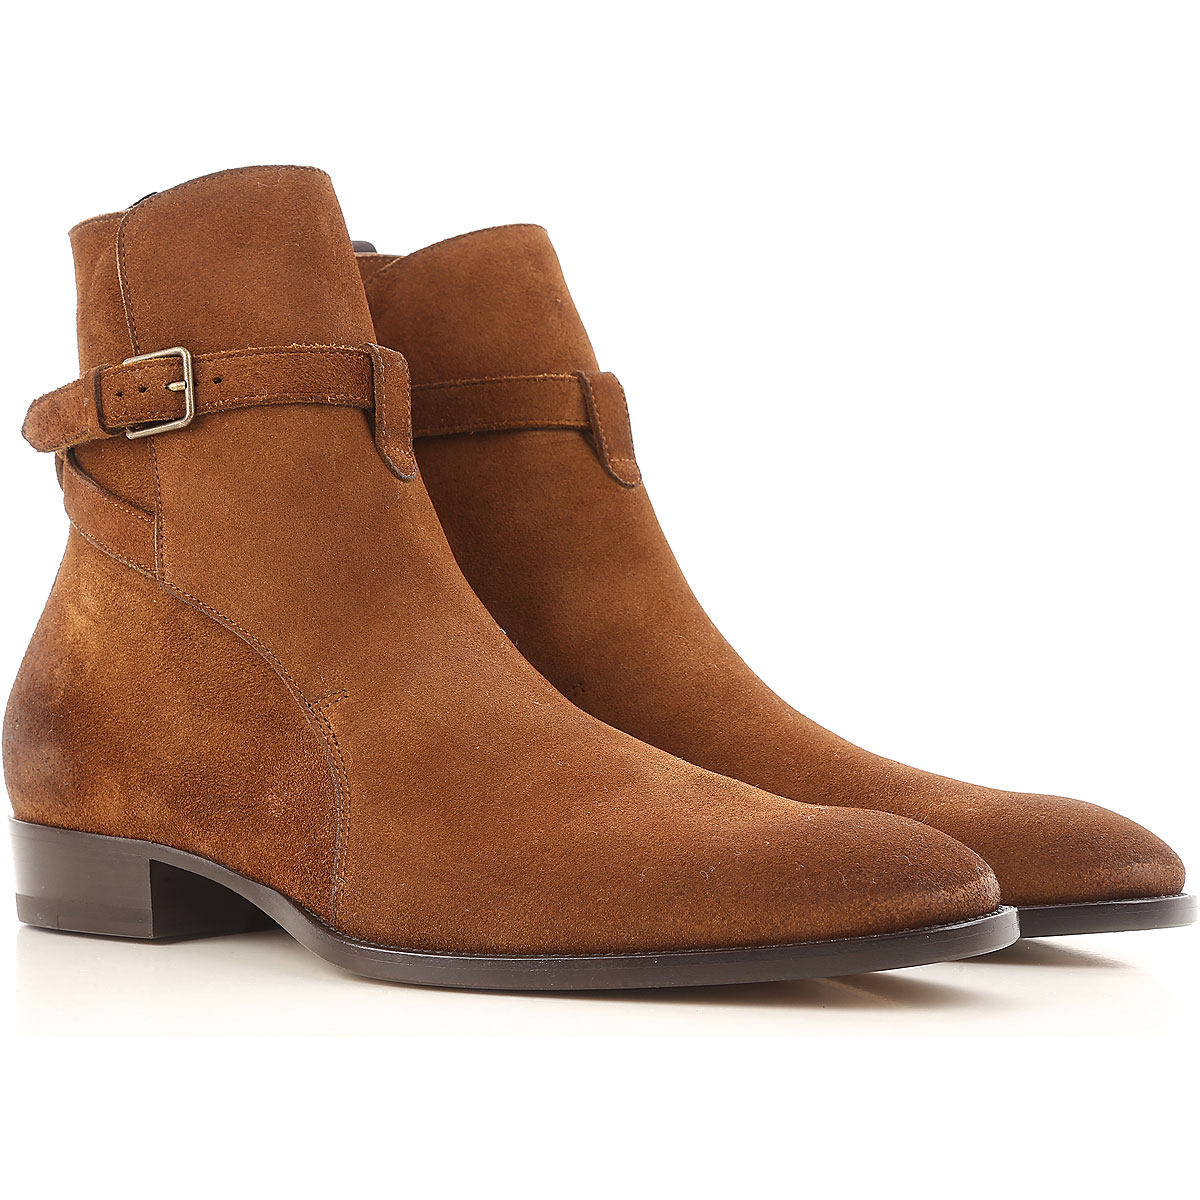 Image of Yves Saint Laurent Boots for Men, Booties, Landed, Suede leather, 2017, 8.5 9